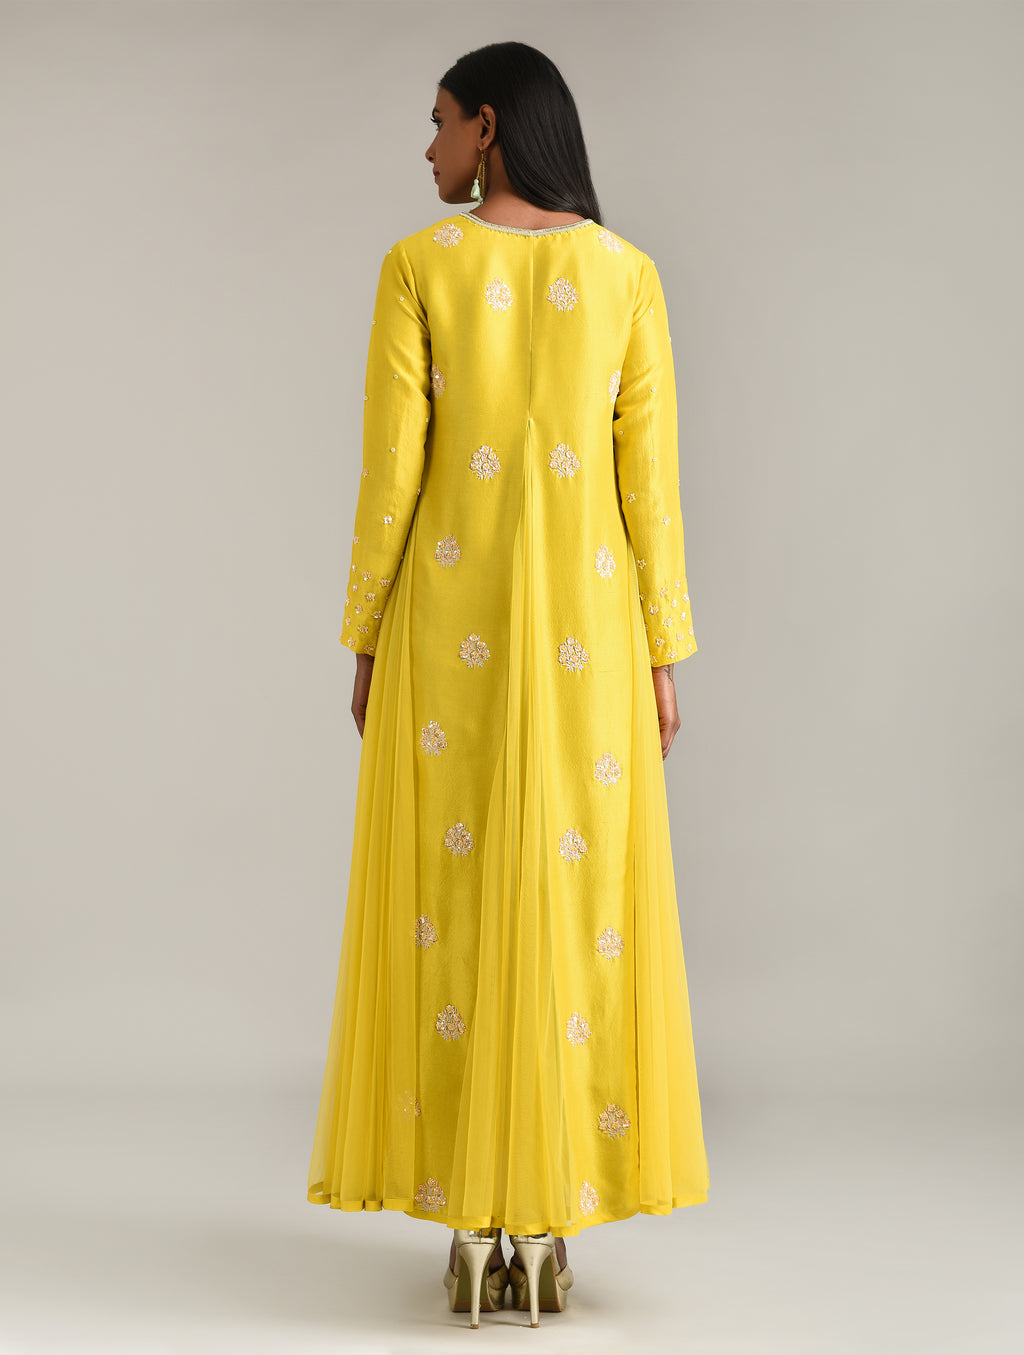 MADSAM TINZIN YELLOW EMBROIDERED JACKET & KURTA SET